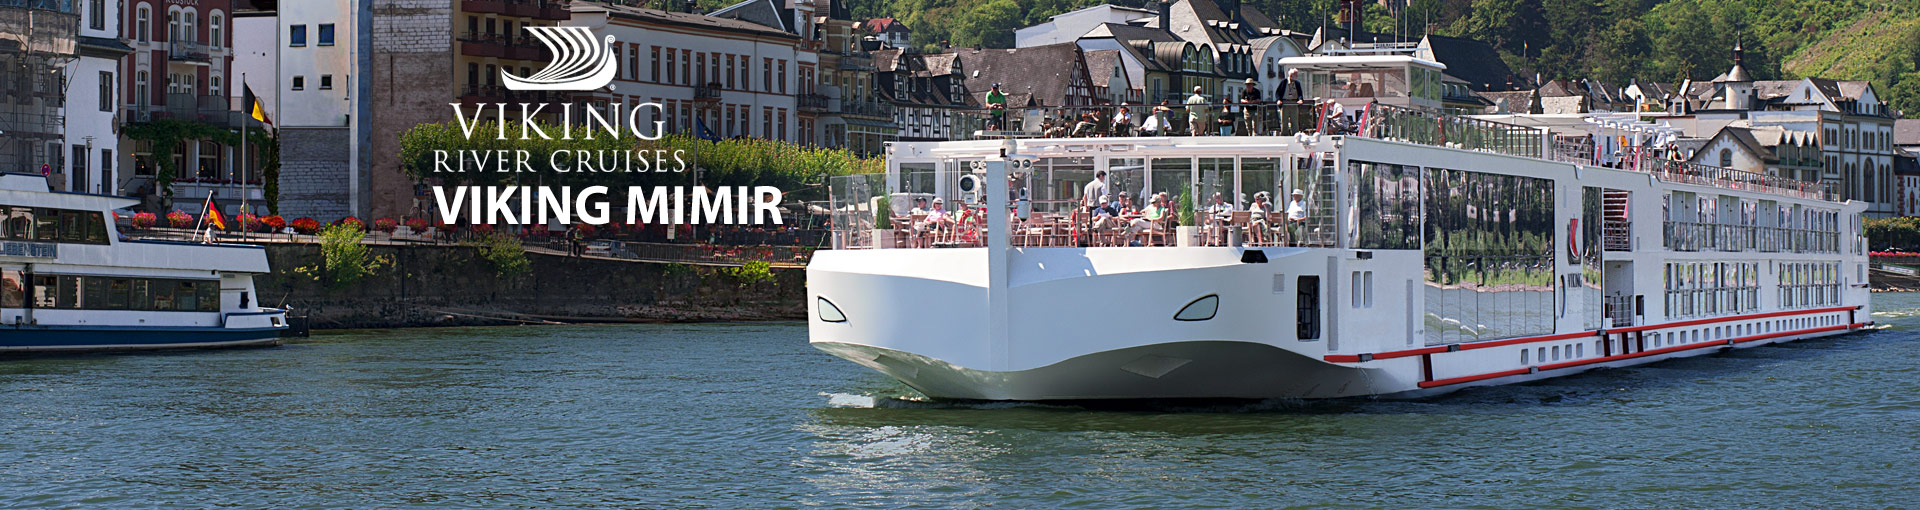 Viking River Viking Mimir river cruise ship